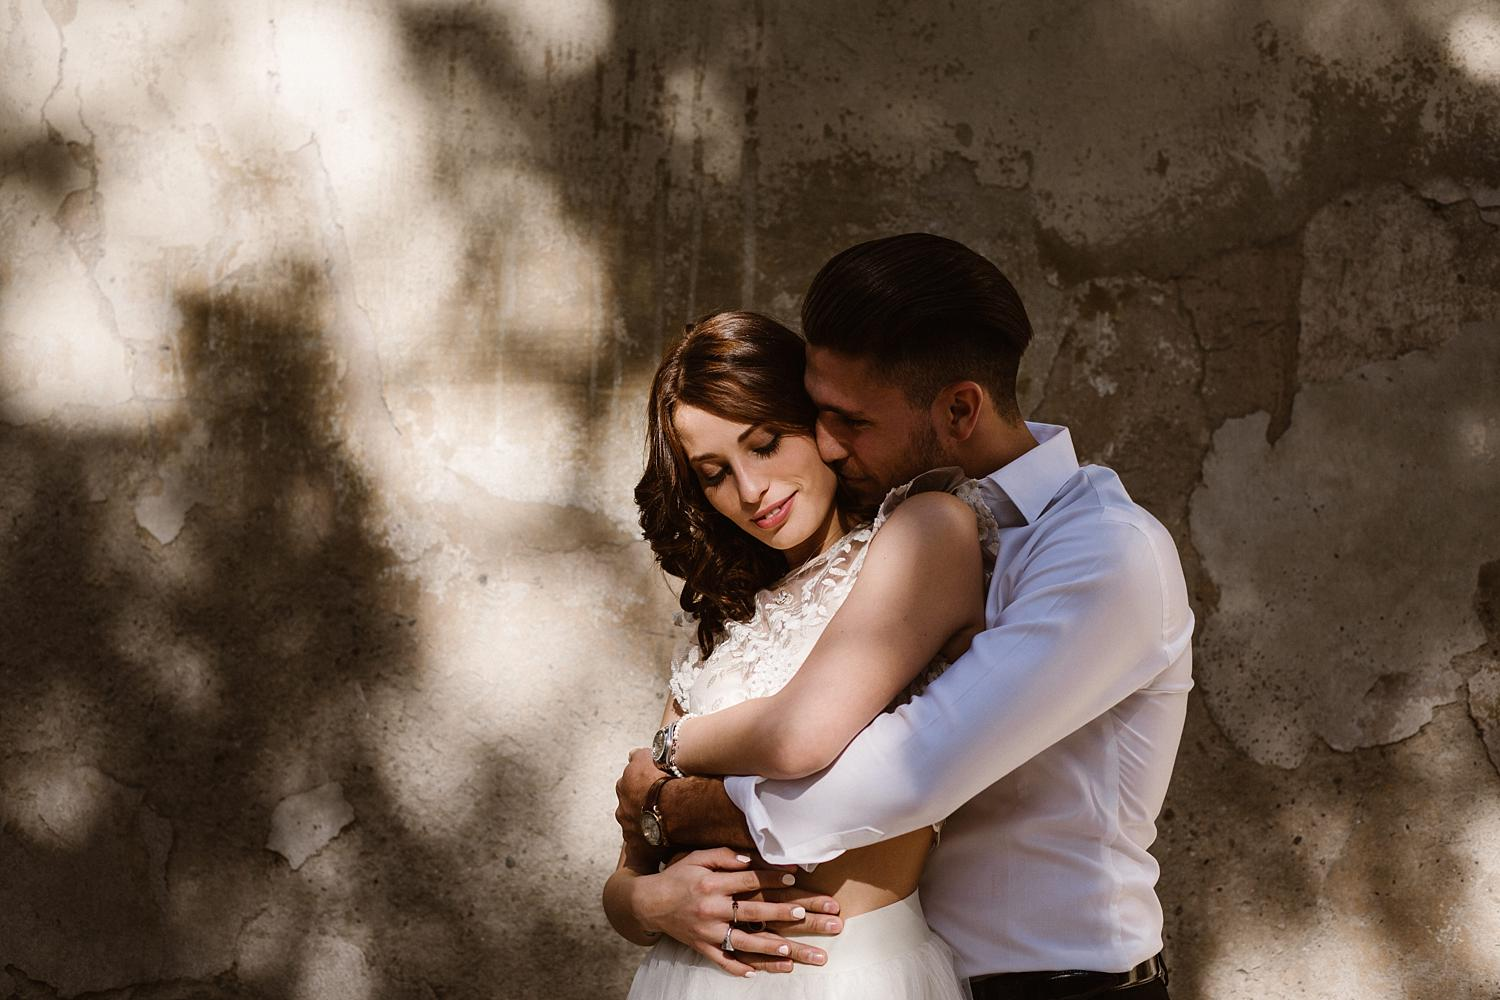 weddingphotographer florence 09 1 - Maddalena & Arturo - A Chic Anniversary Session in Florence